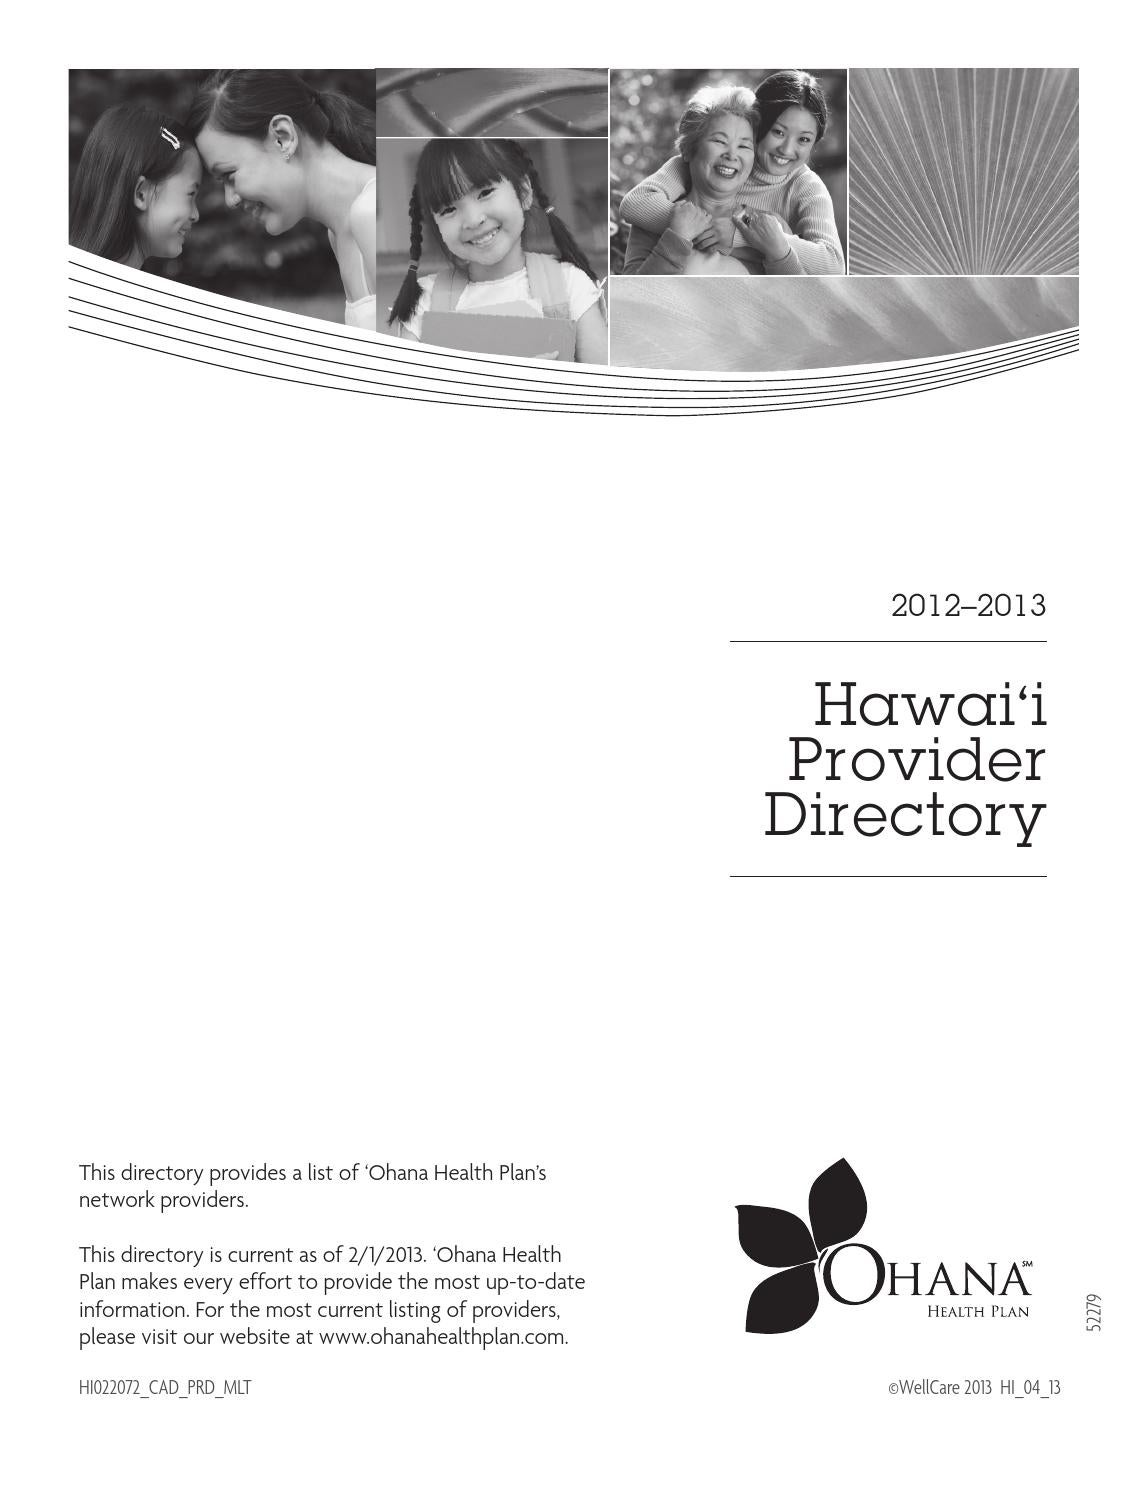 Provider Directory HI 2 by Brian McDowell - issuu